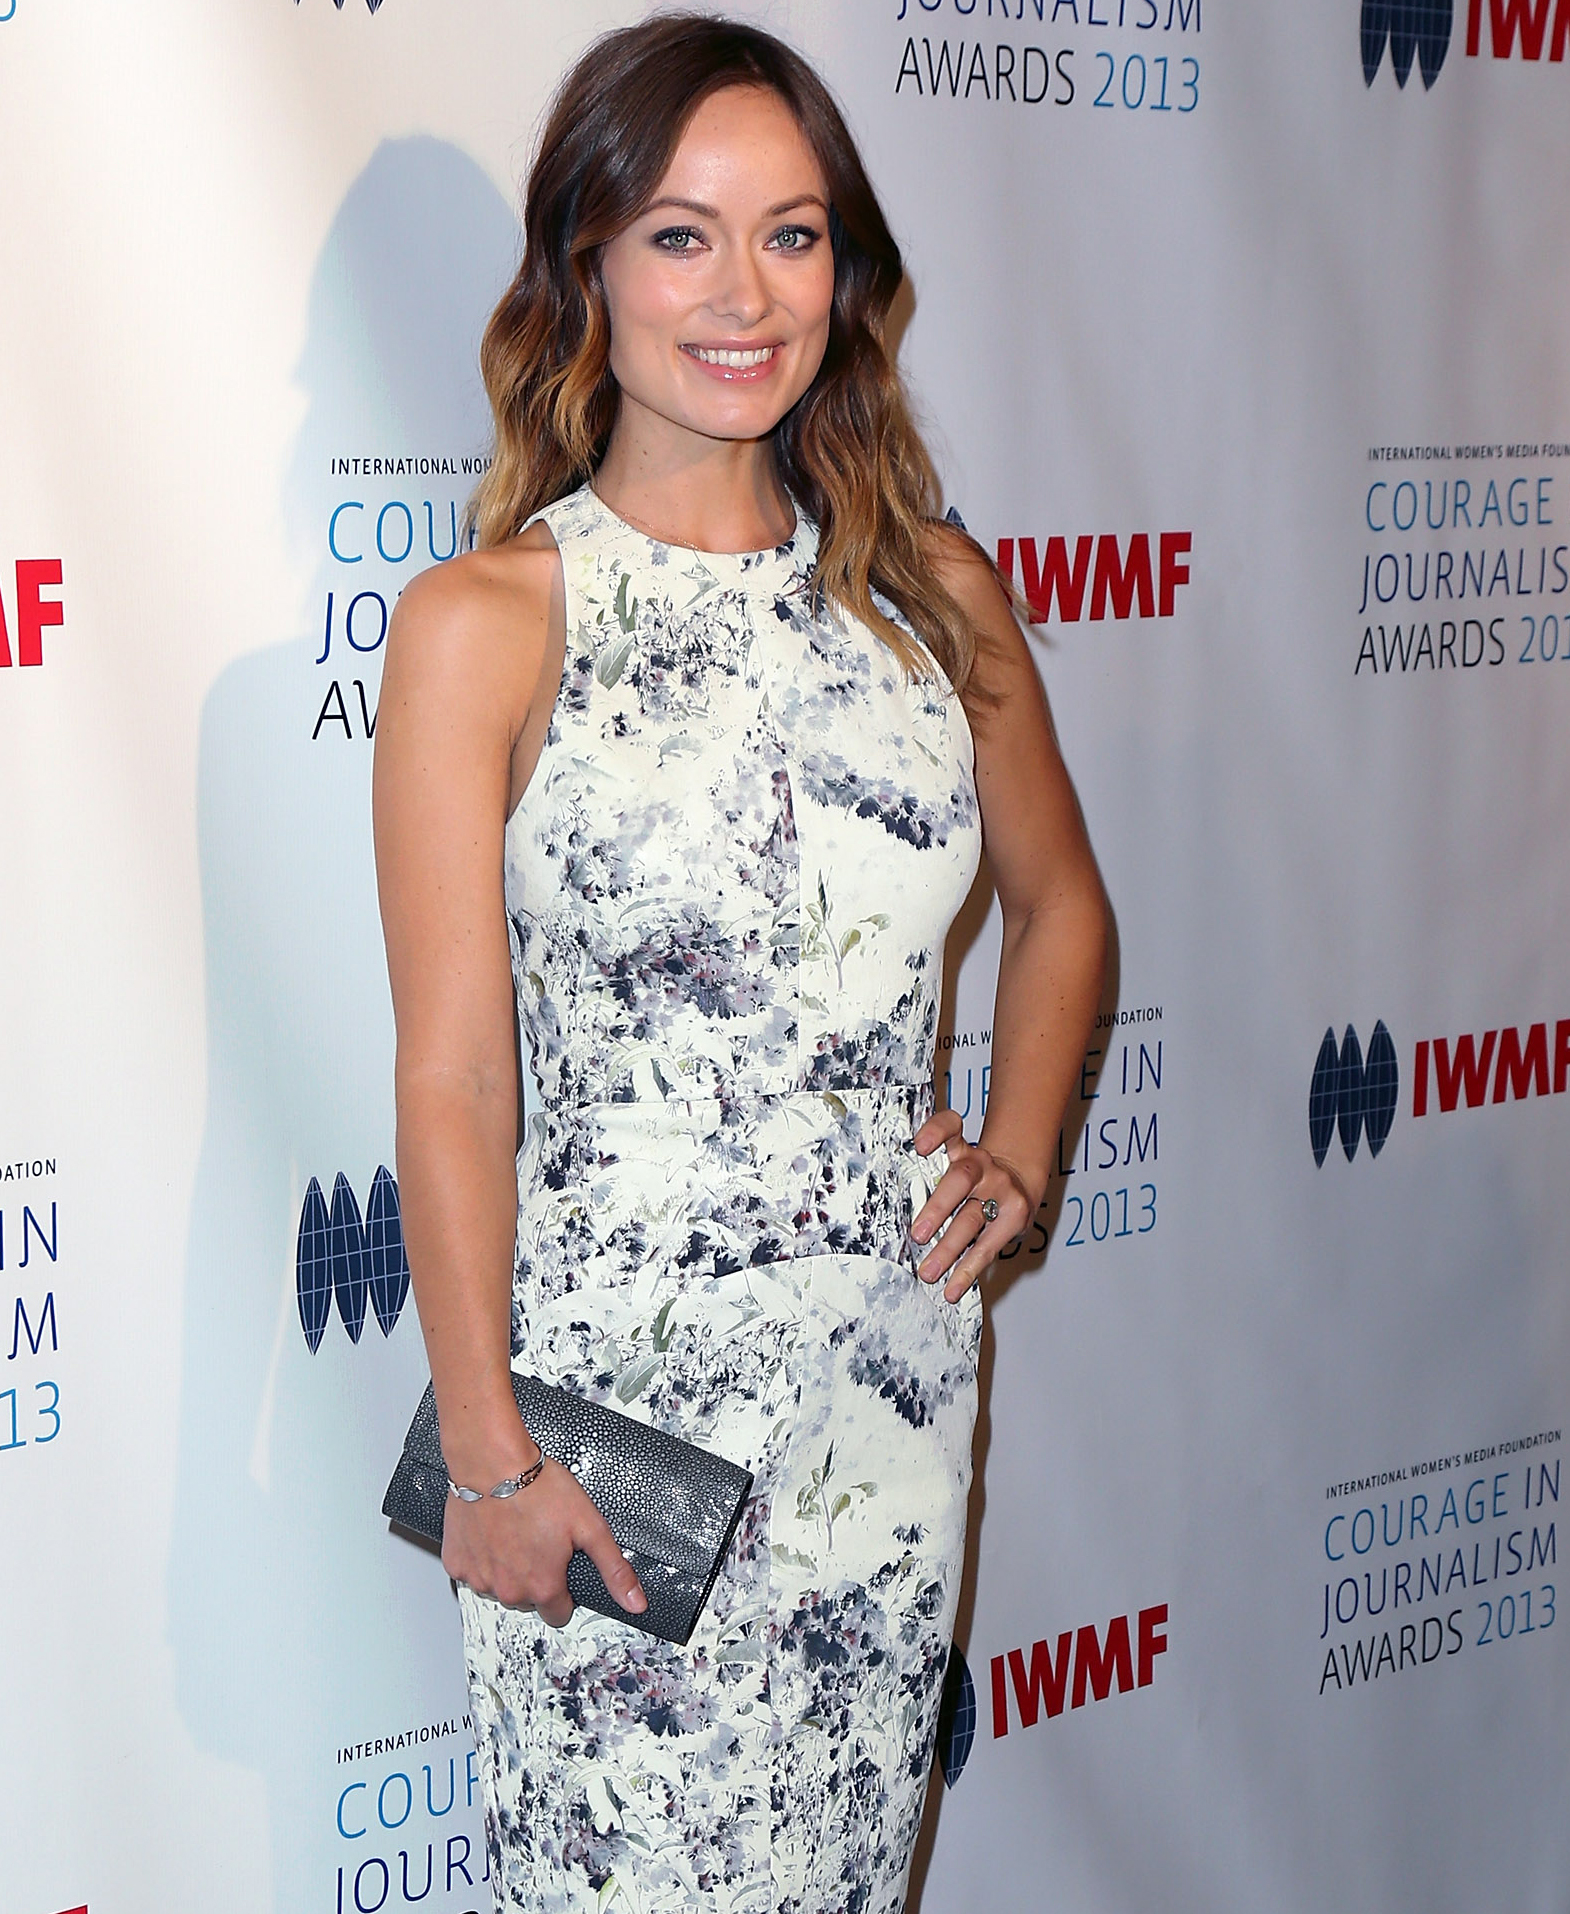 Olivia Wilde at Courage in Journalism awards (Getty Images)